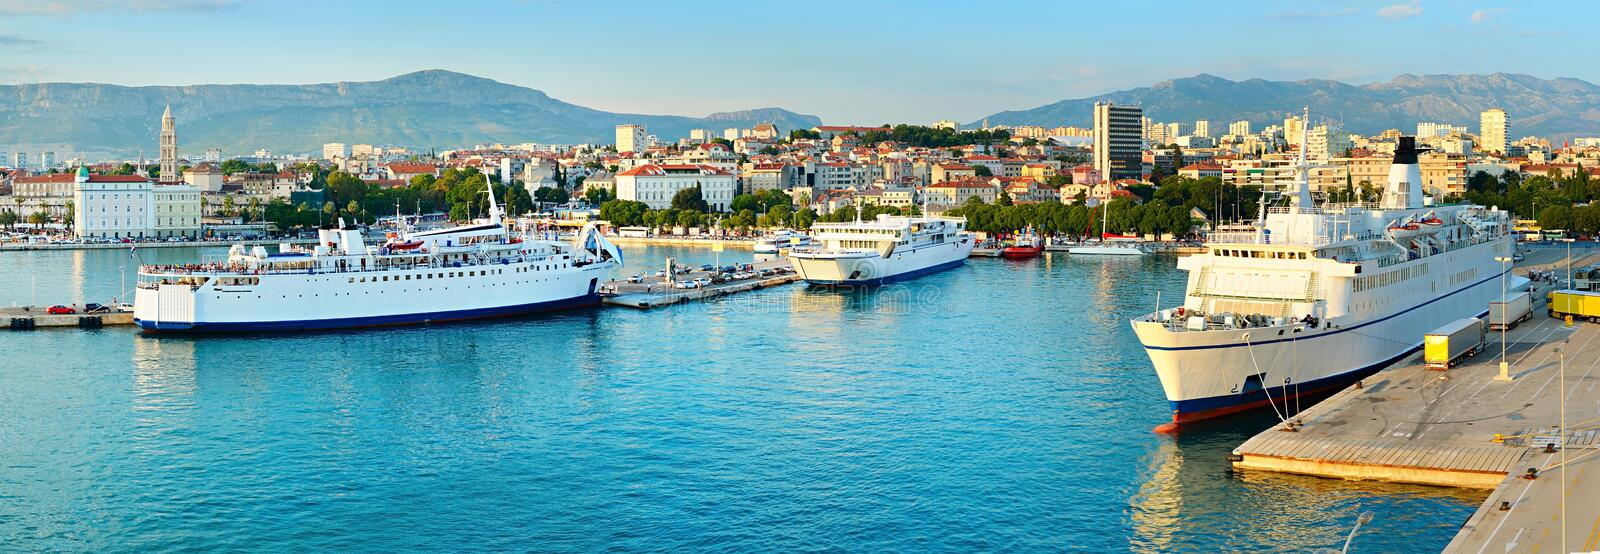 Cruise to Croatia. Port of Split at sunset. Panoramic view. Croatia stock photo